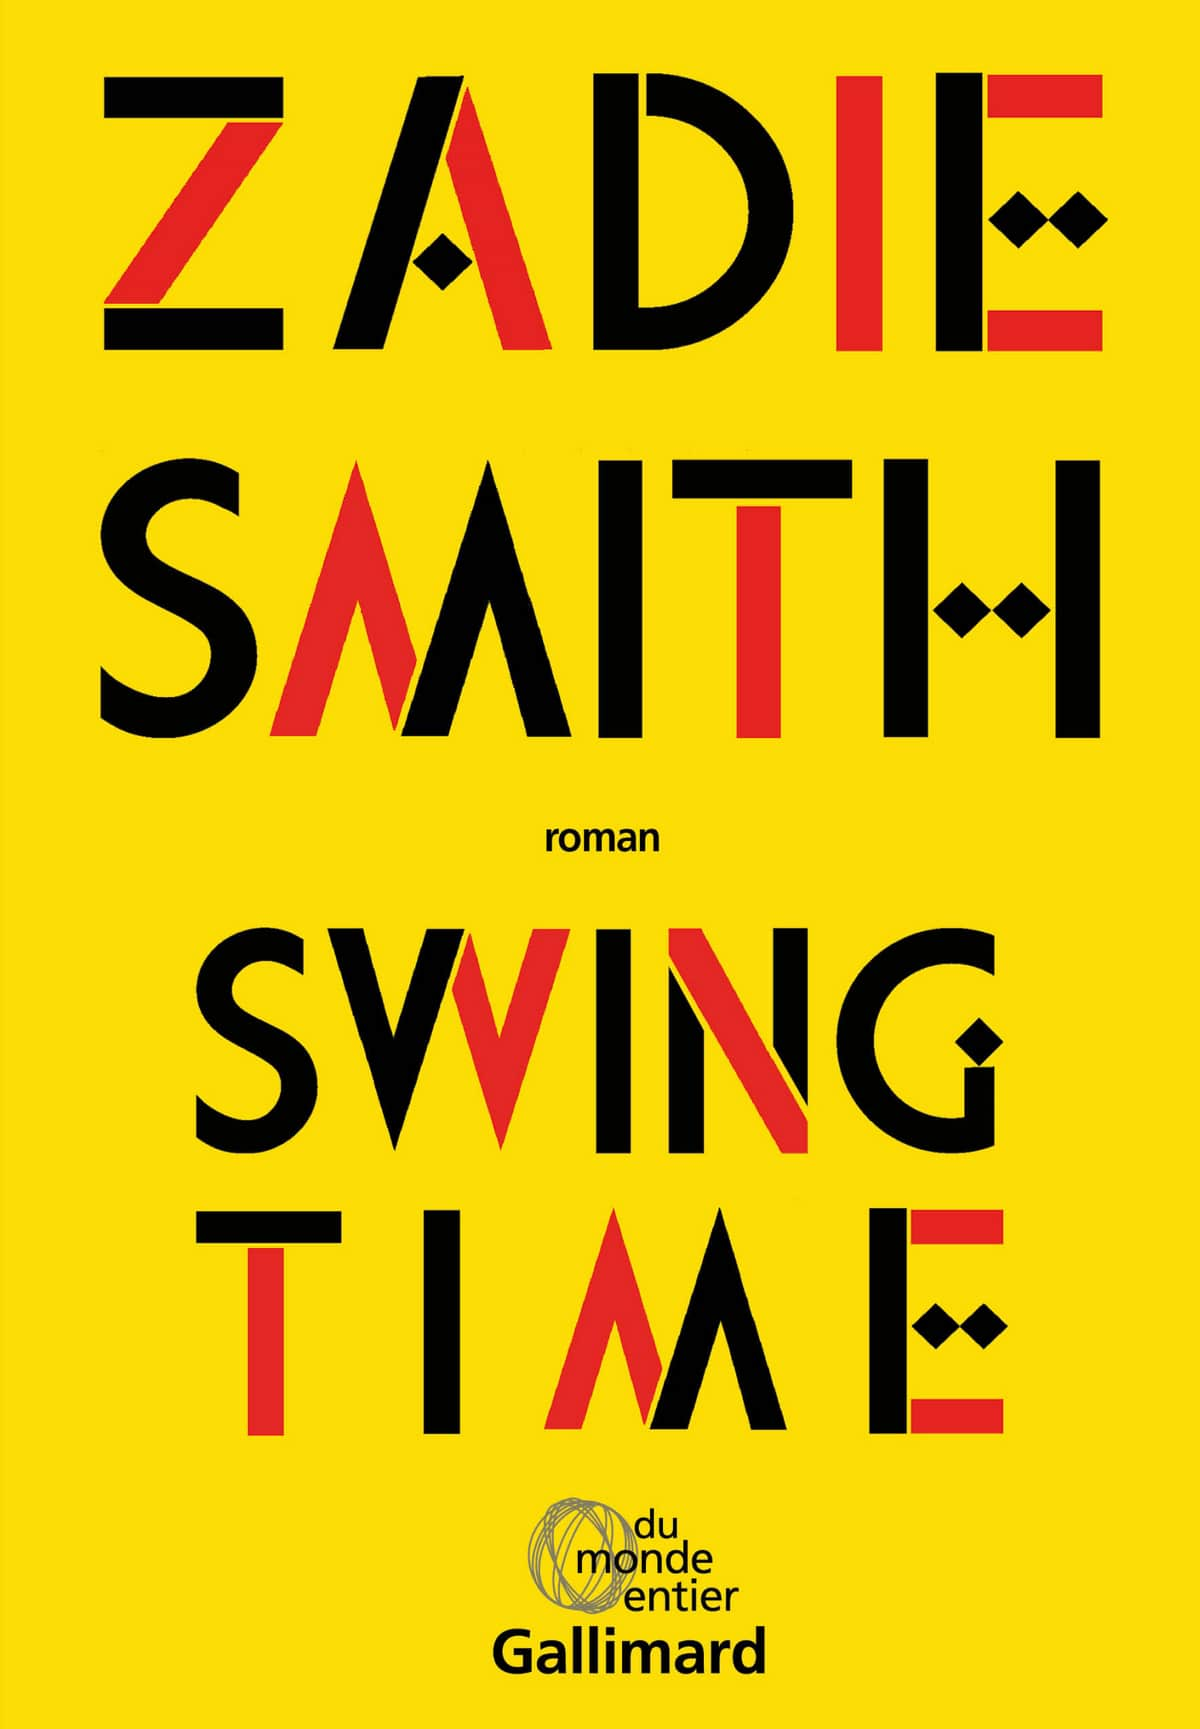 Swing Time de Zadie Smith, un roman notable sur la diversité culturelle